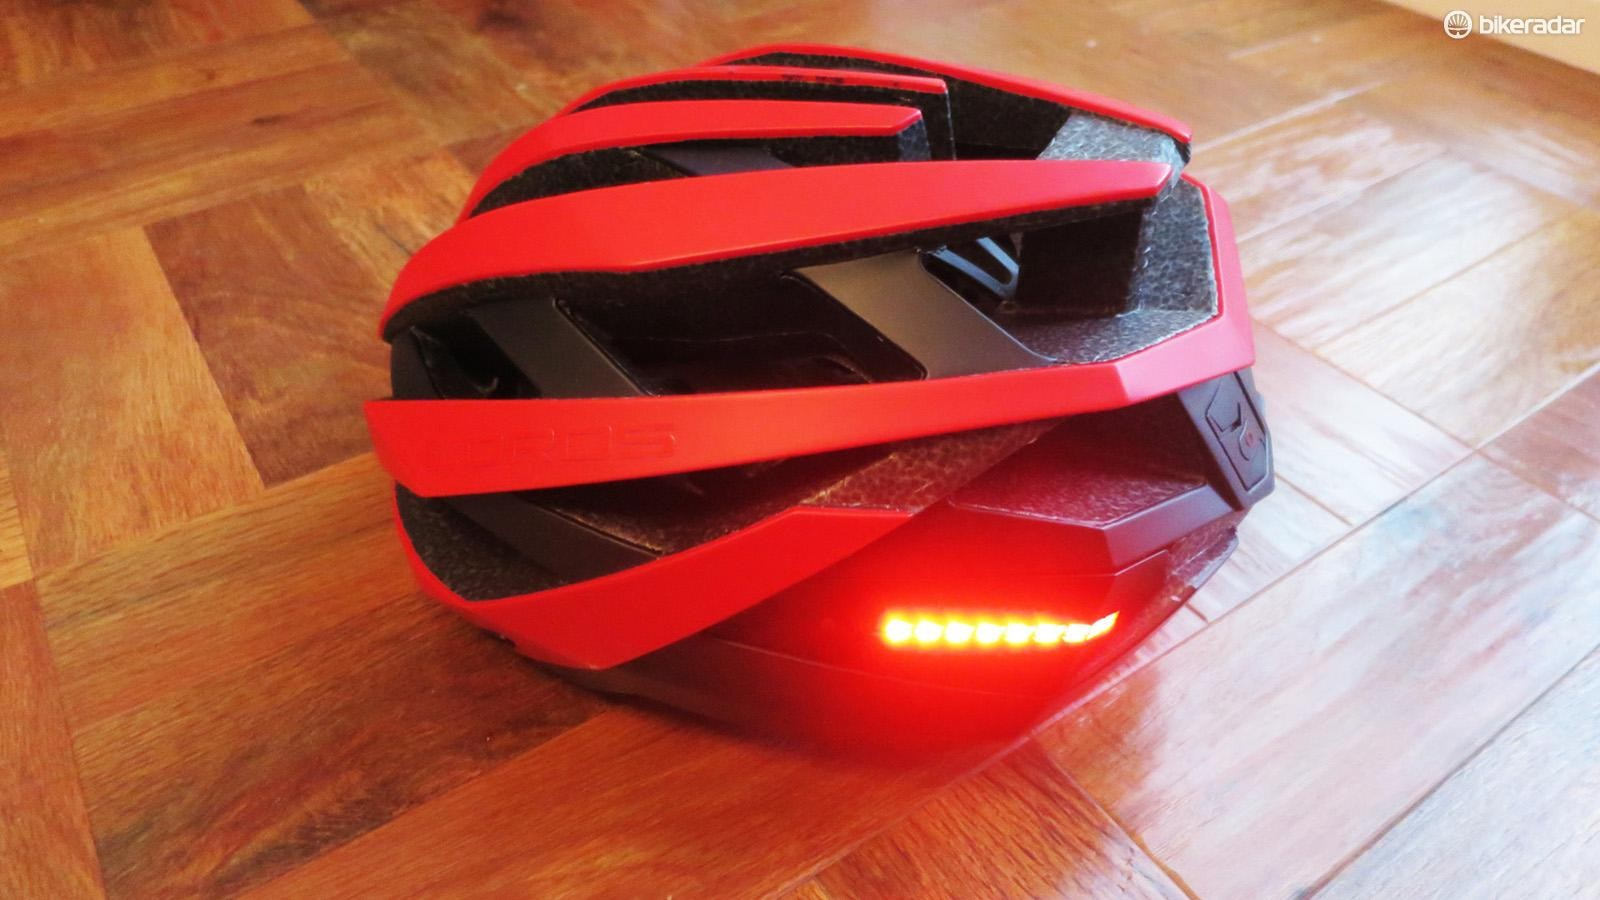 You can control the inbuilt rear lights on the Omni using either the phone app or a bar-mounted remote control